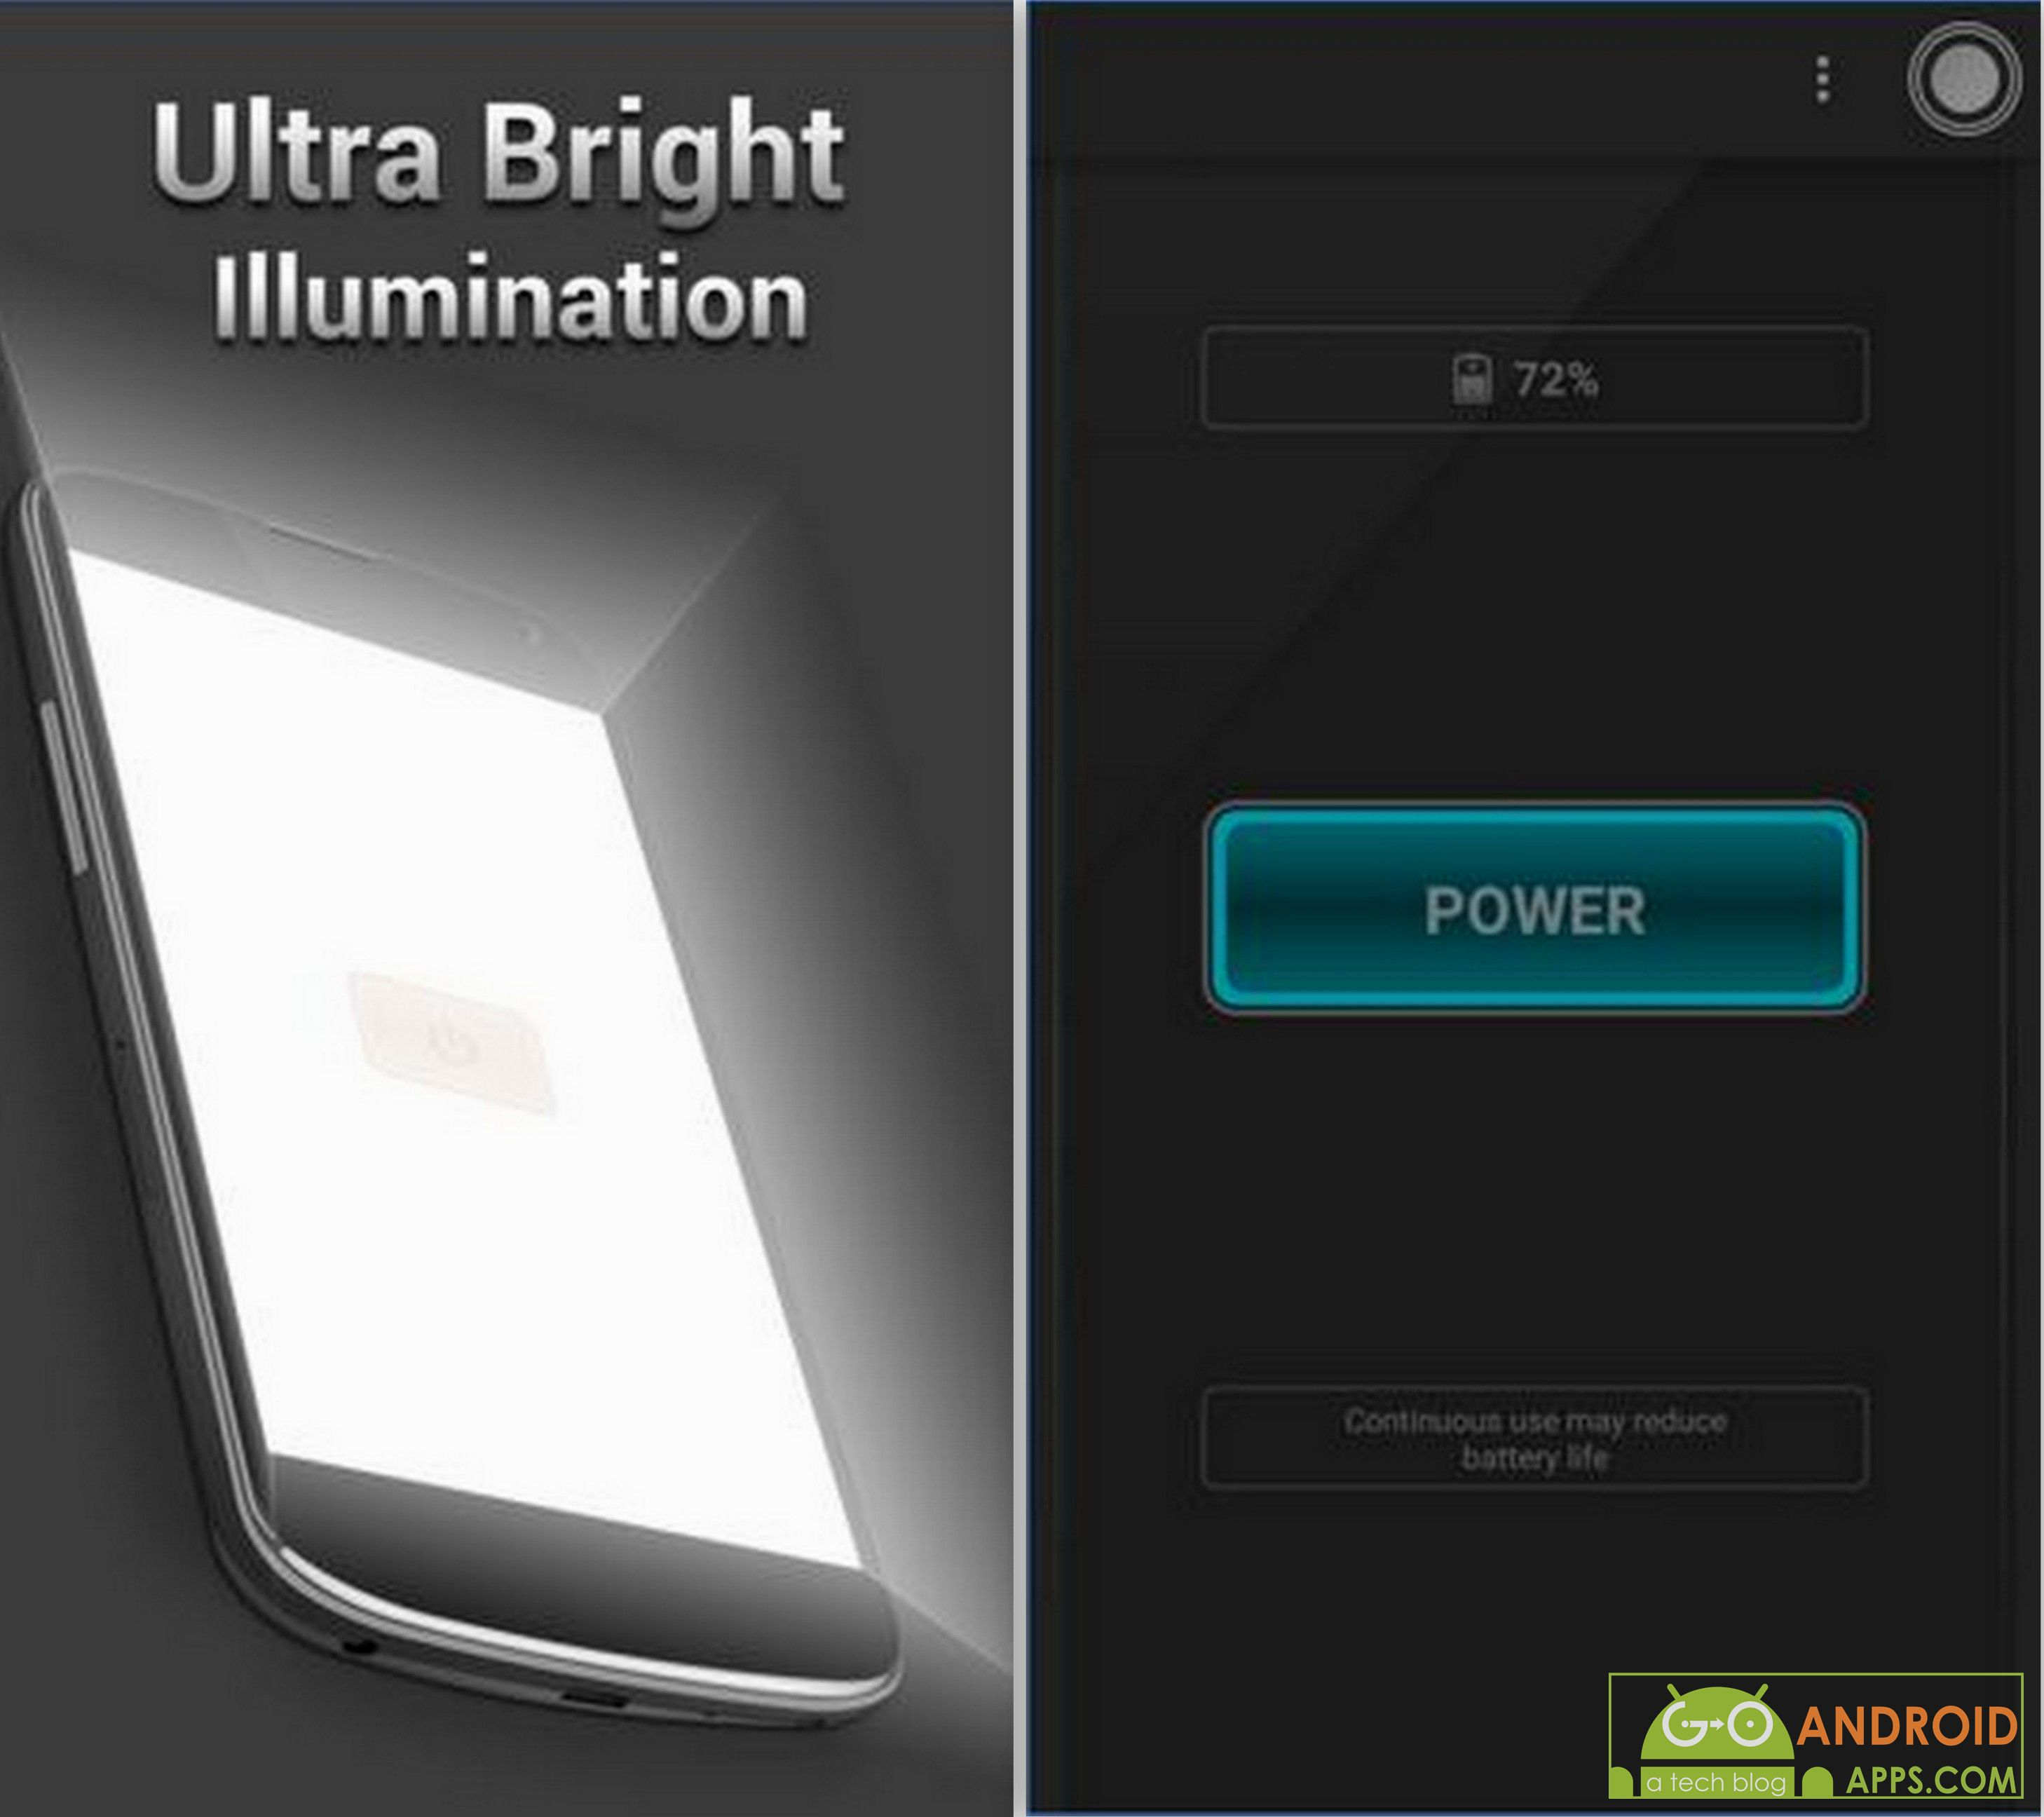 Phone Free Flashlight Apps For Android Phones best torch apps for android 2016 flashlight one of the amazing productivity tools your phone it is 100 free amazingly bright always available when you require it